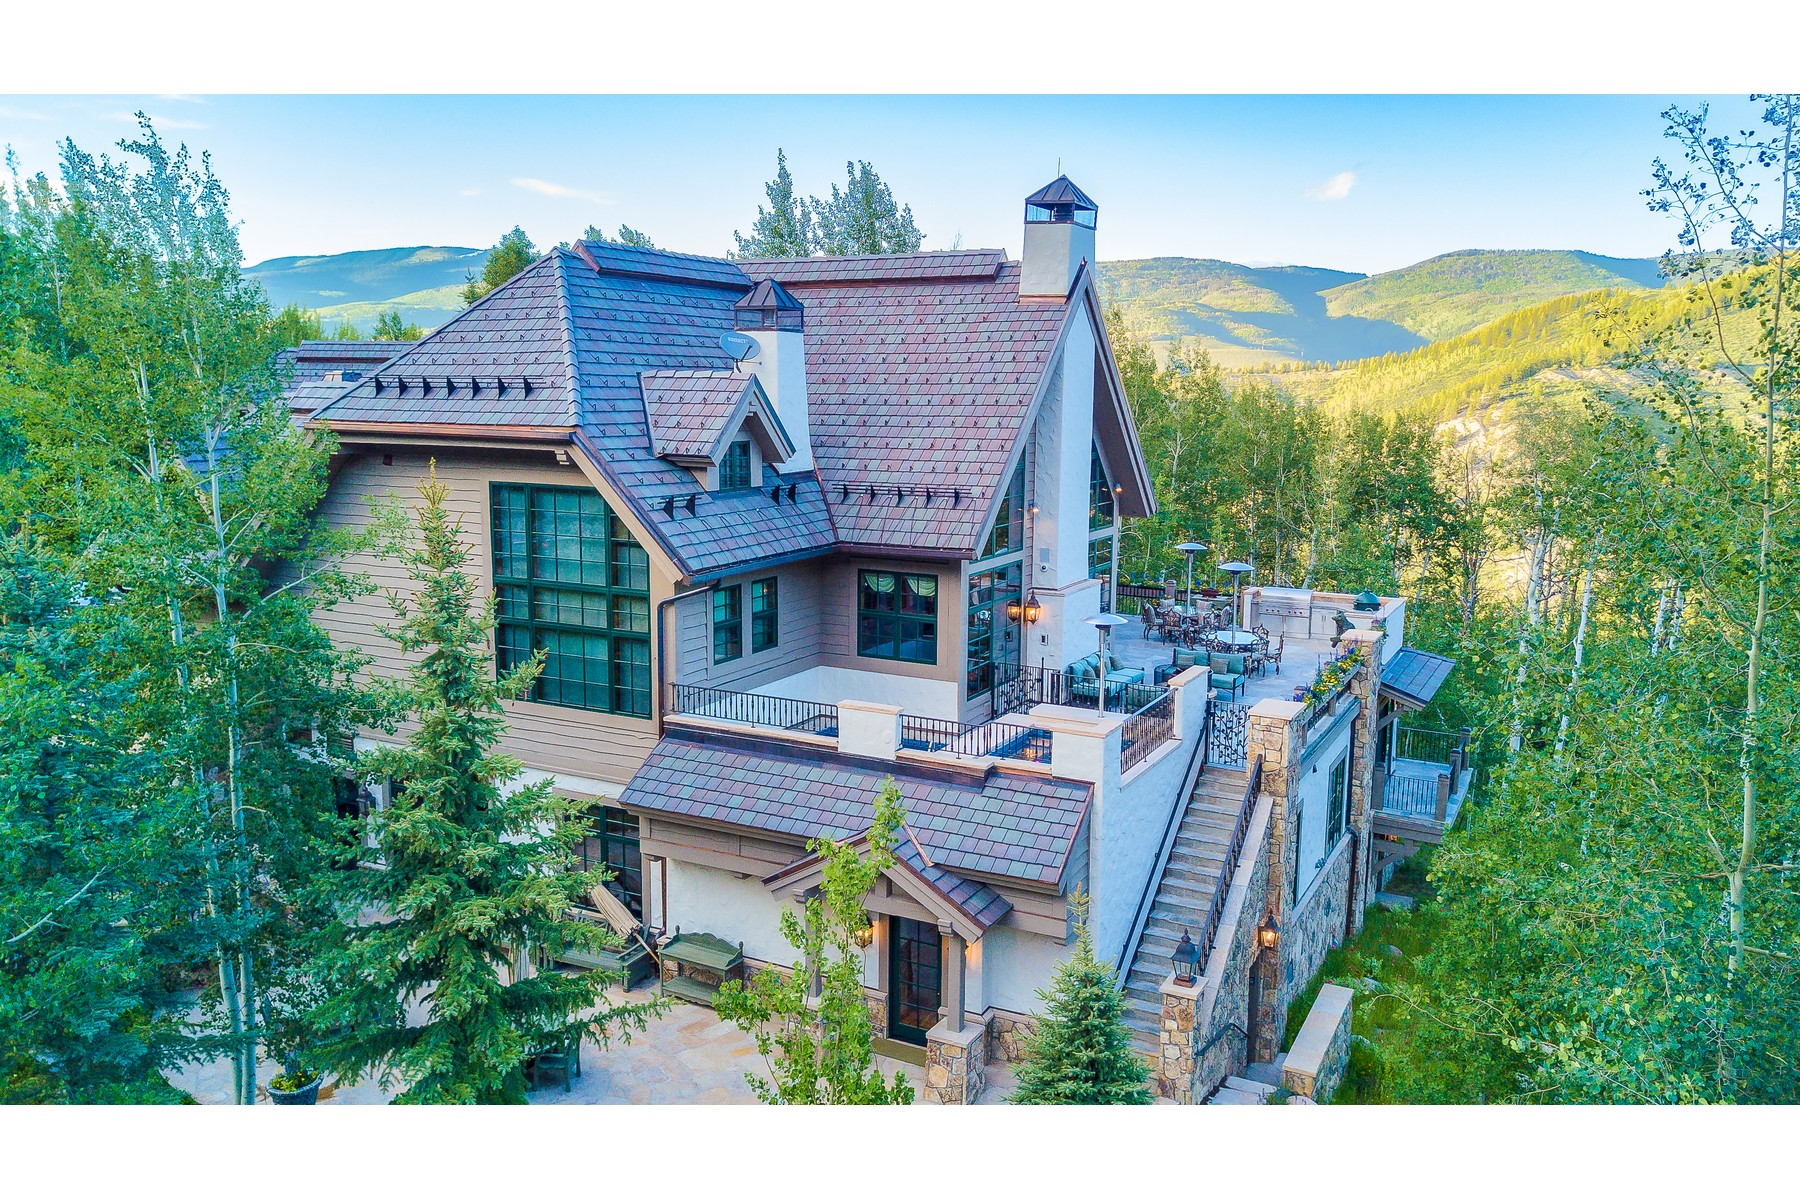 Single Family Home for Active at Extensive new construction with state-of-the-art technology 22 Strawberry Park Road Beaver Creek, Colorado 81620 United States